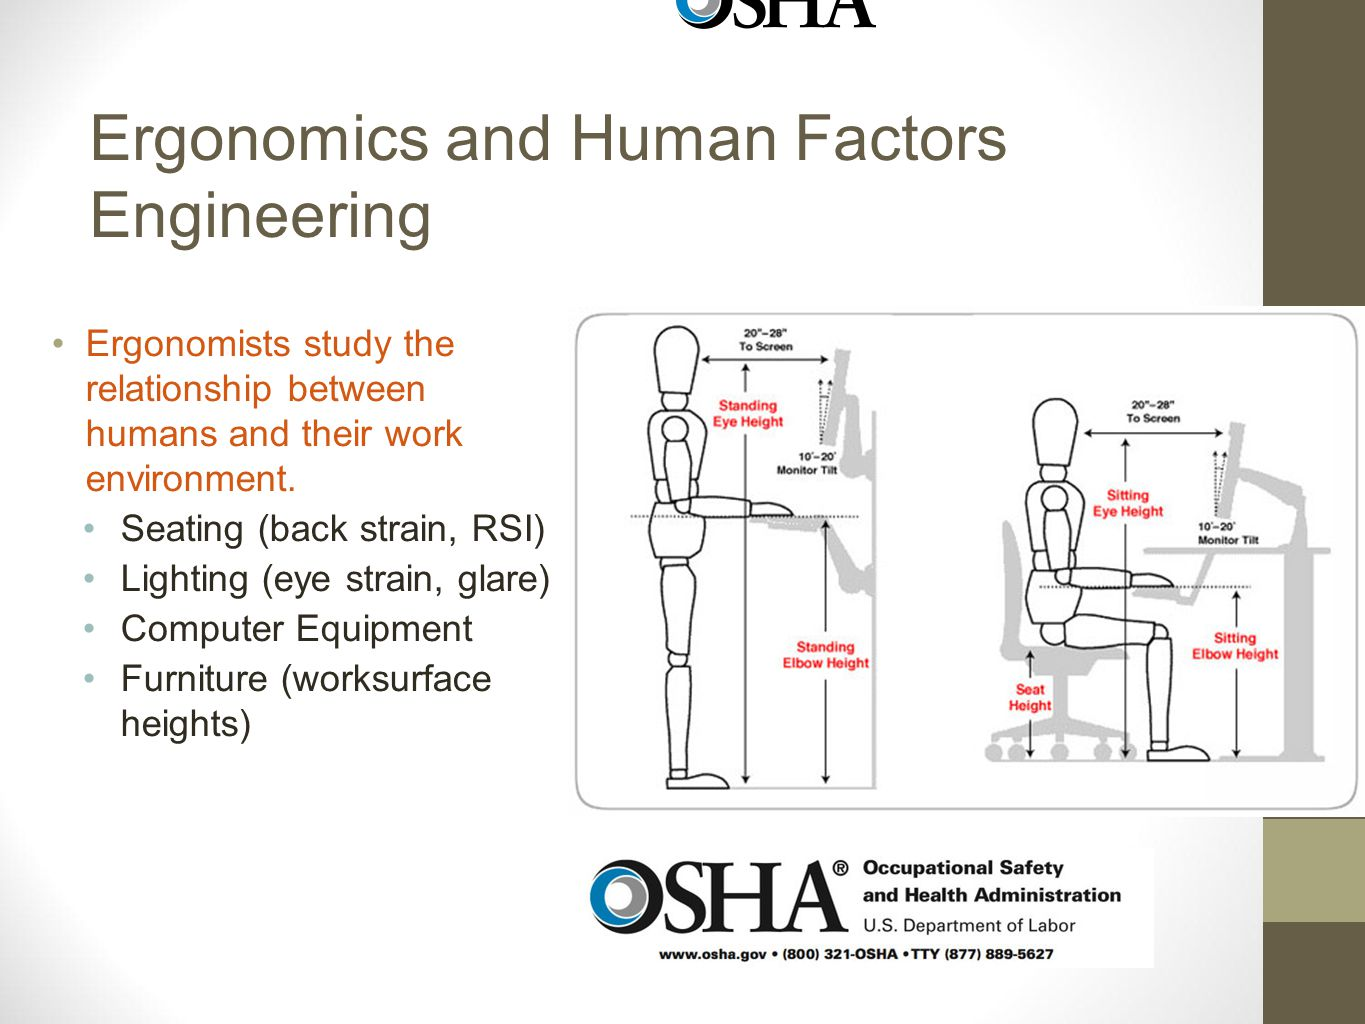 ergonomics is the study of relationship between quantity